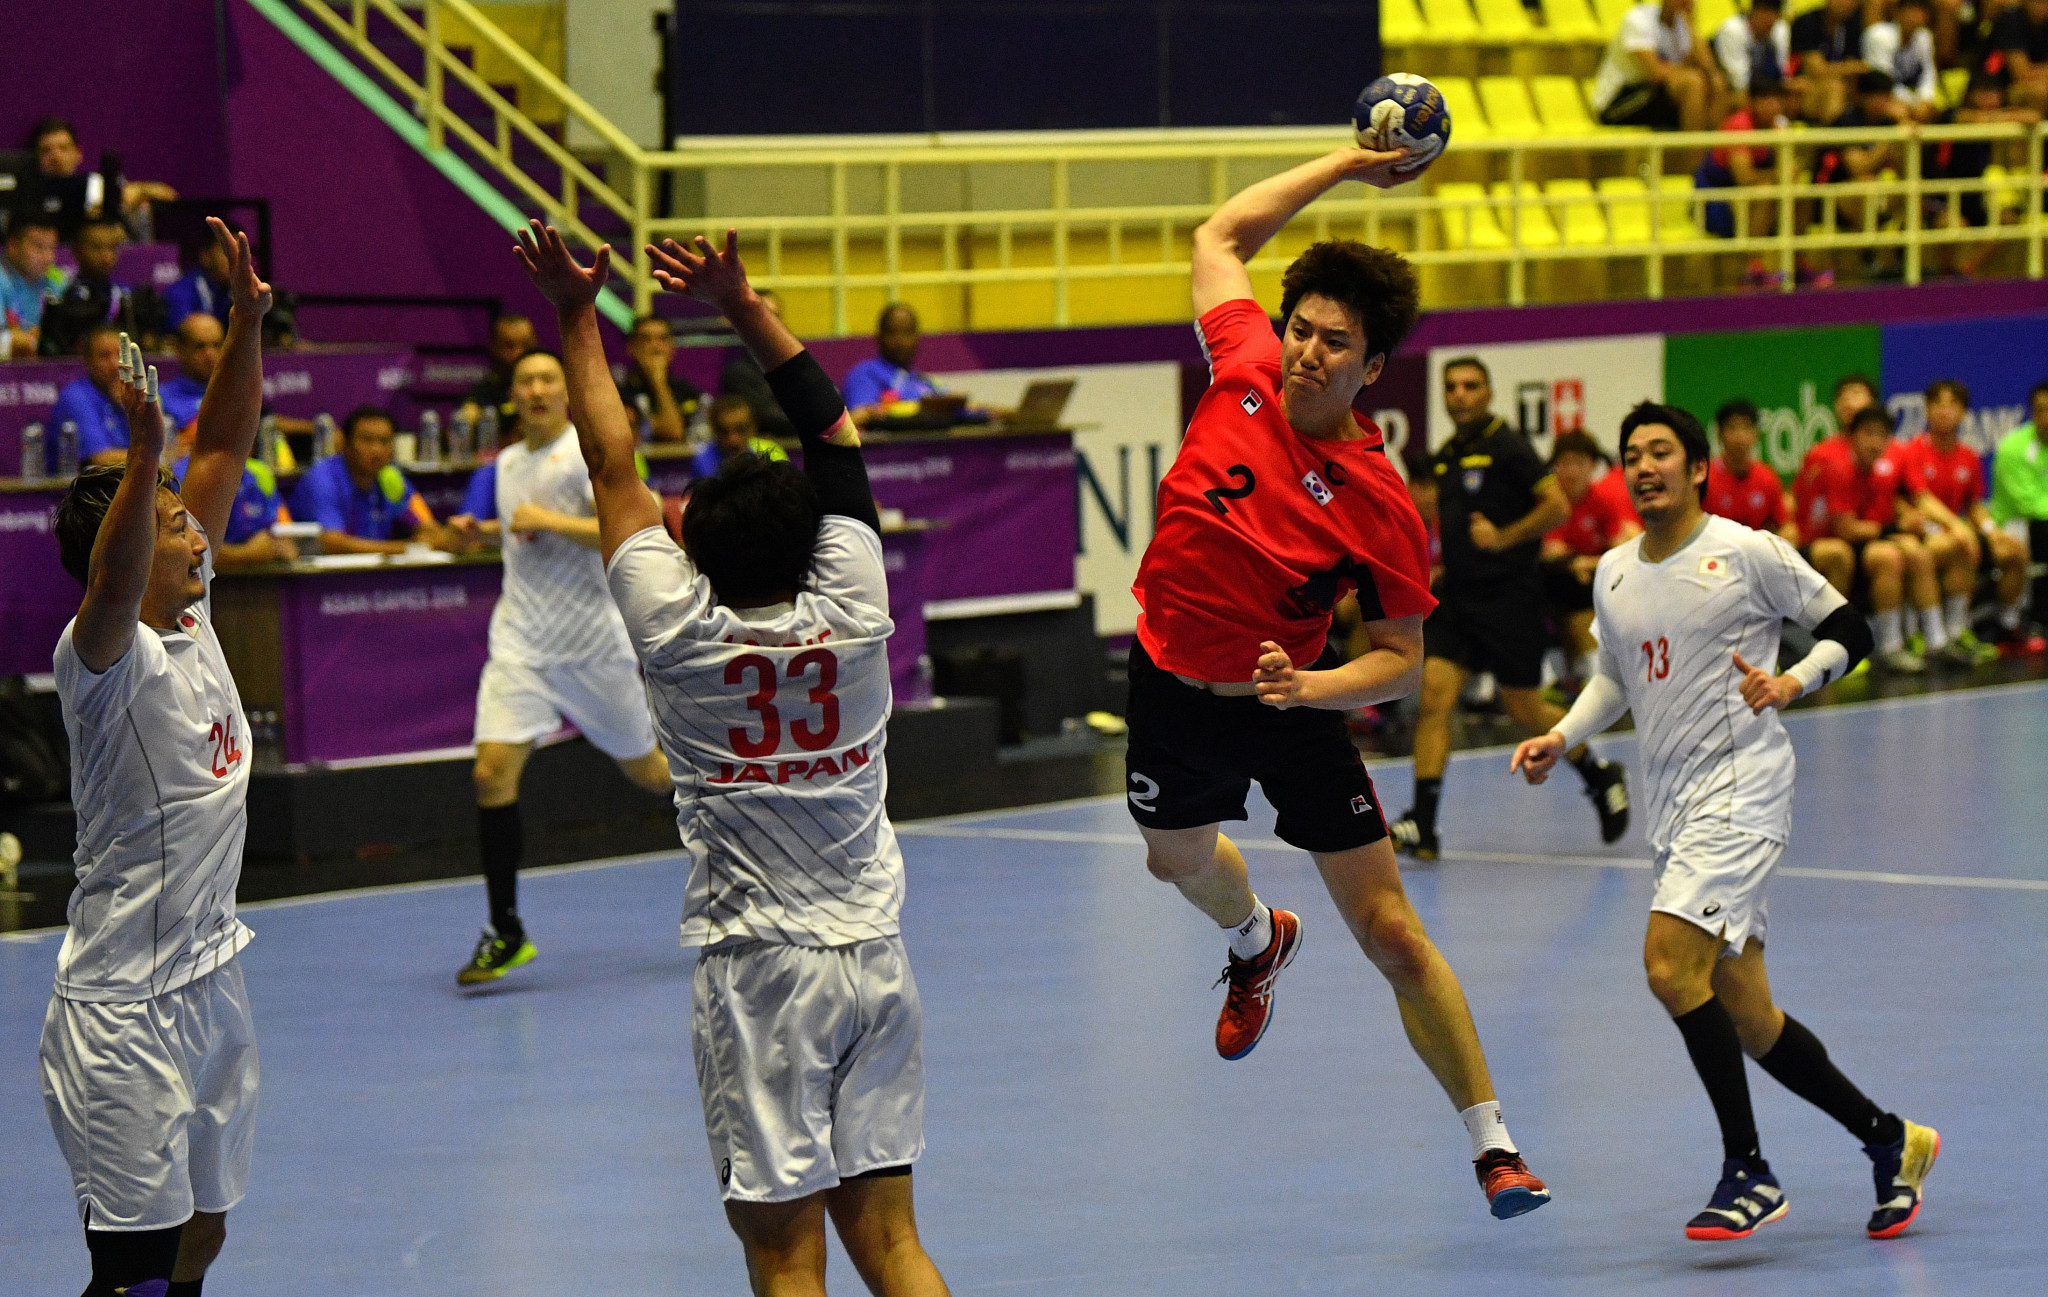 Joint Korean team granted roster expansion for IHF World Men's Handball Championships